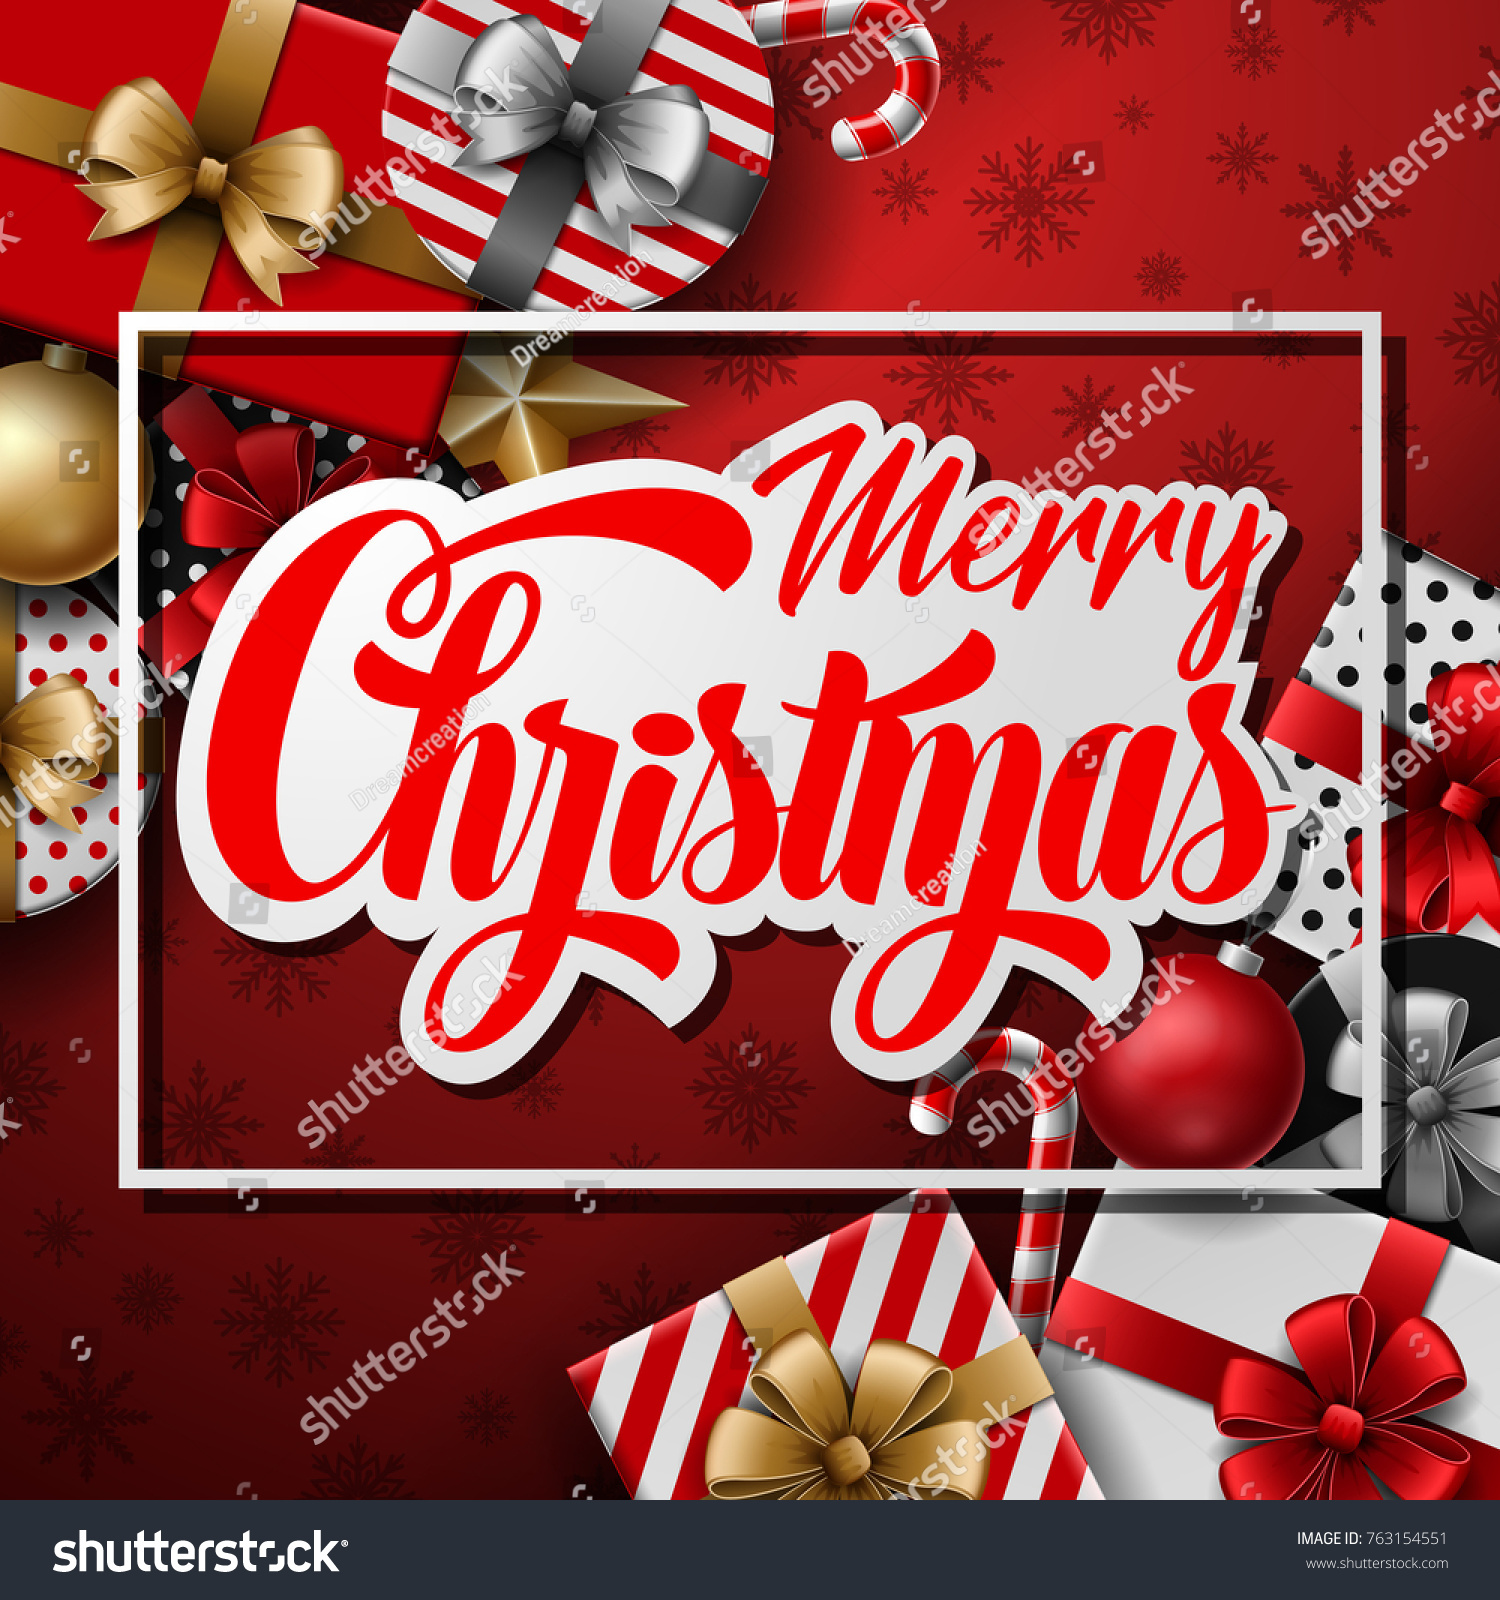 Vector illustration merry christmas text on stock vector 763154551 vector illustration of merry christmas text on paper label with christmas elements kristyandbryce Image collections